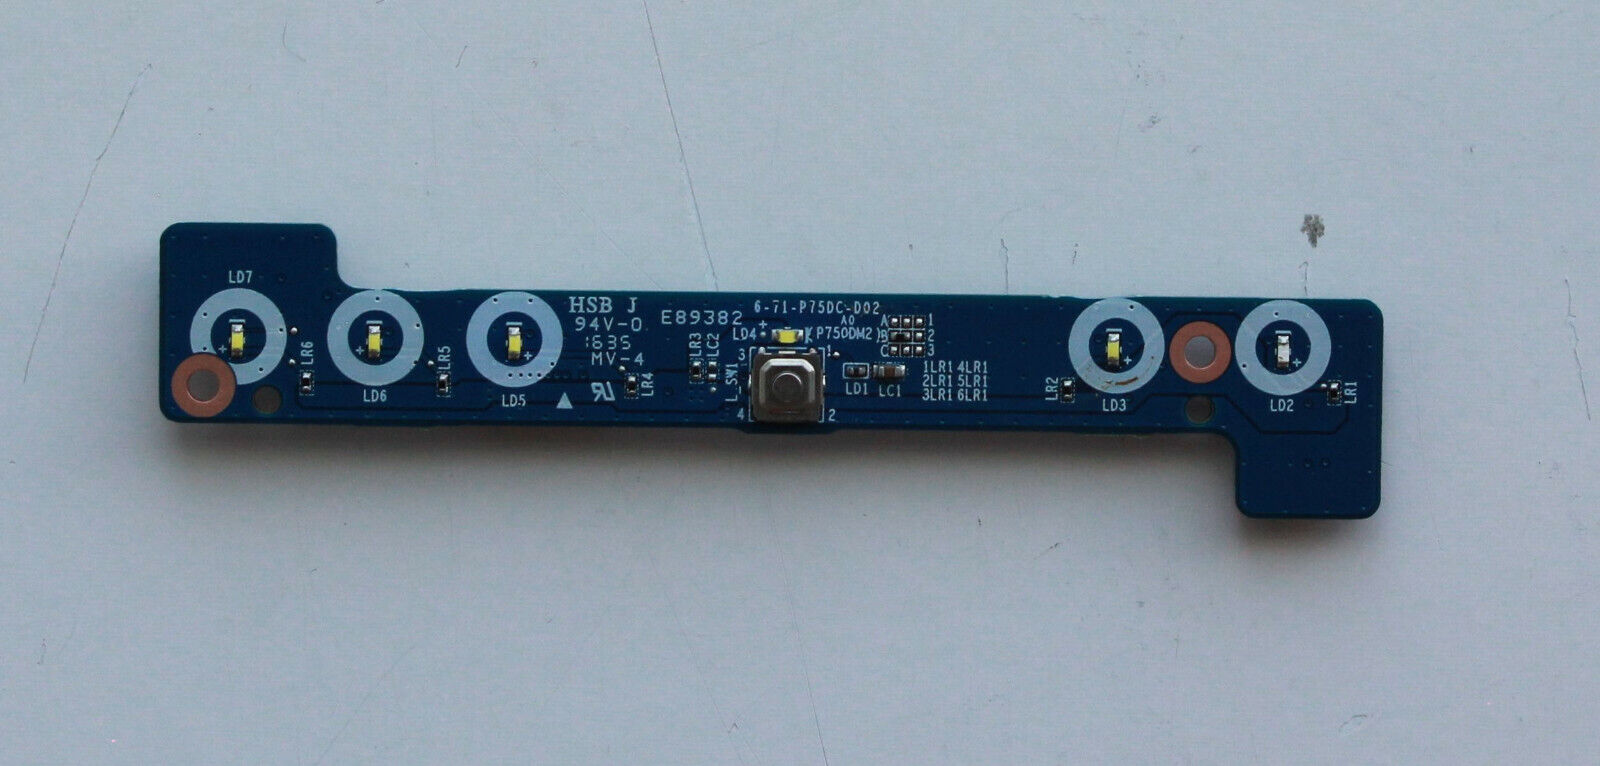 CLEVO P751DM2-G Power Button Board with LED 6-71-P75DC-D02 (B128)